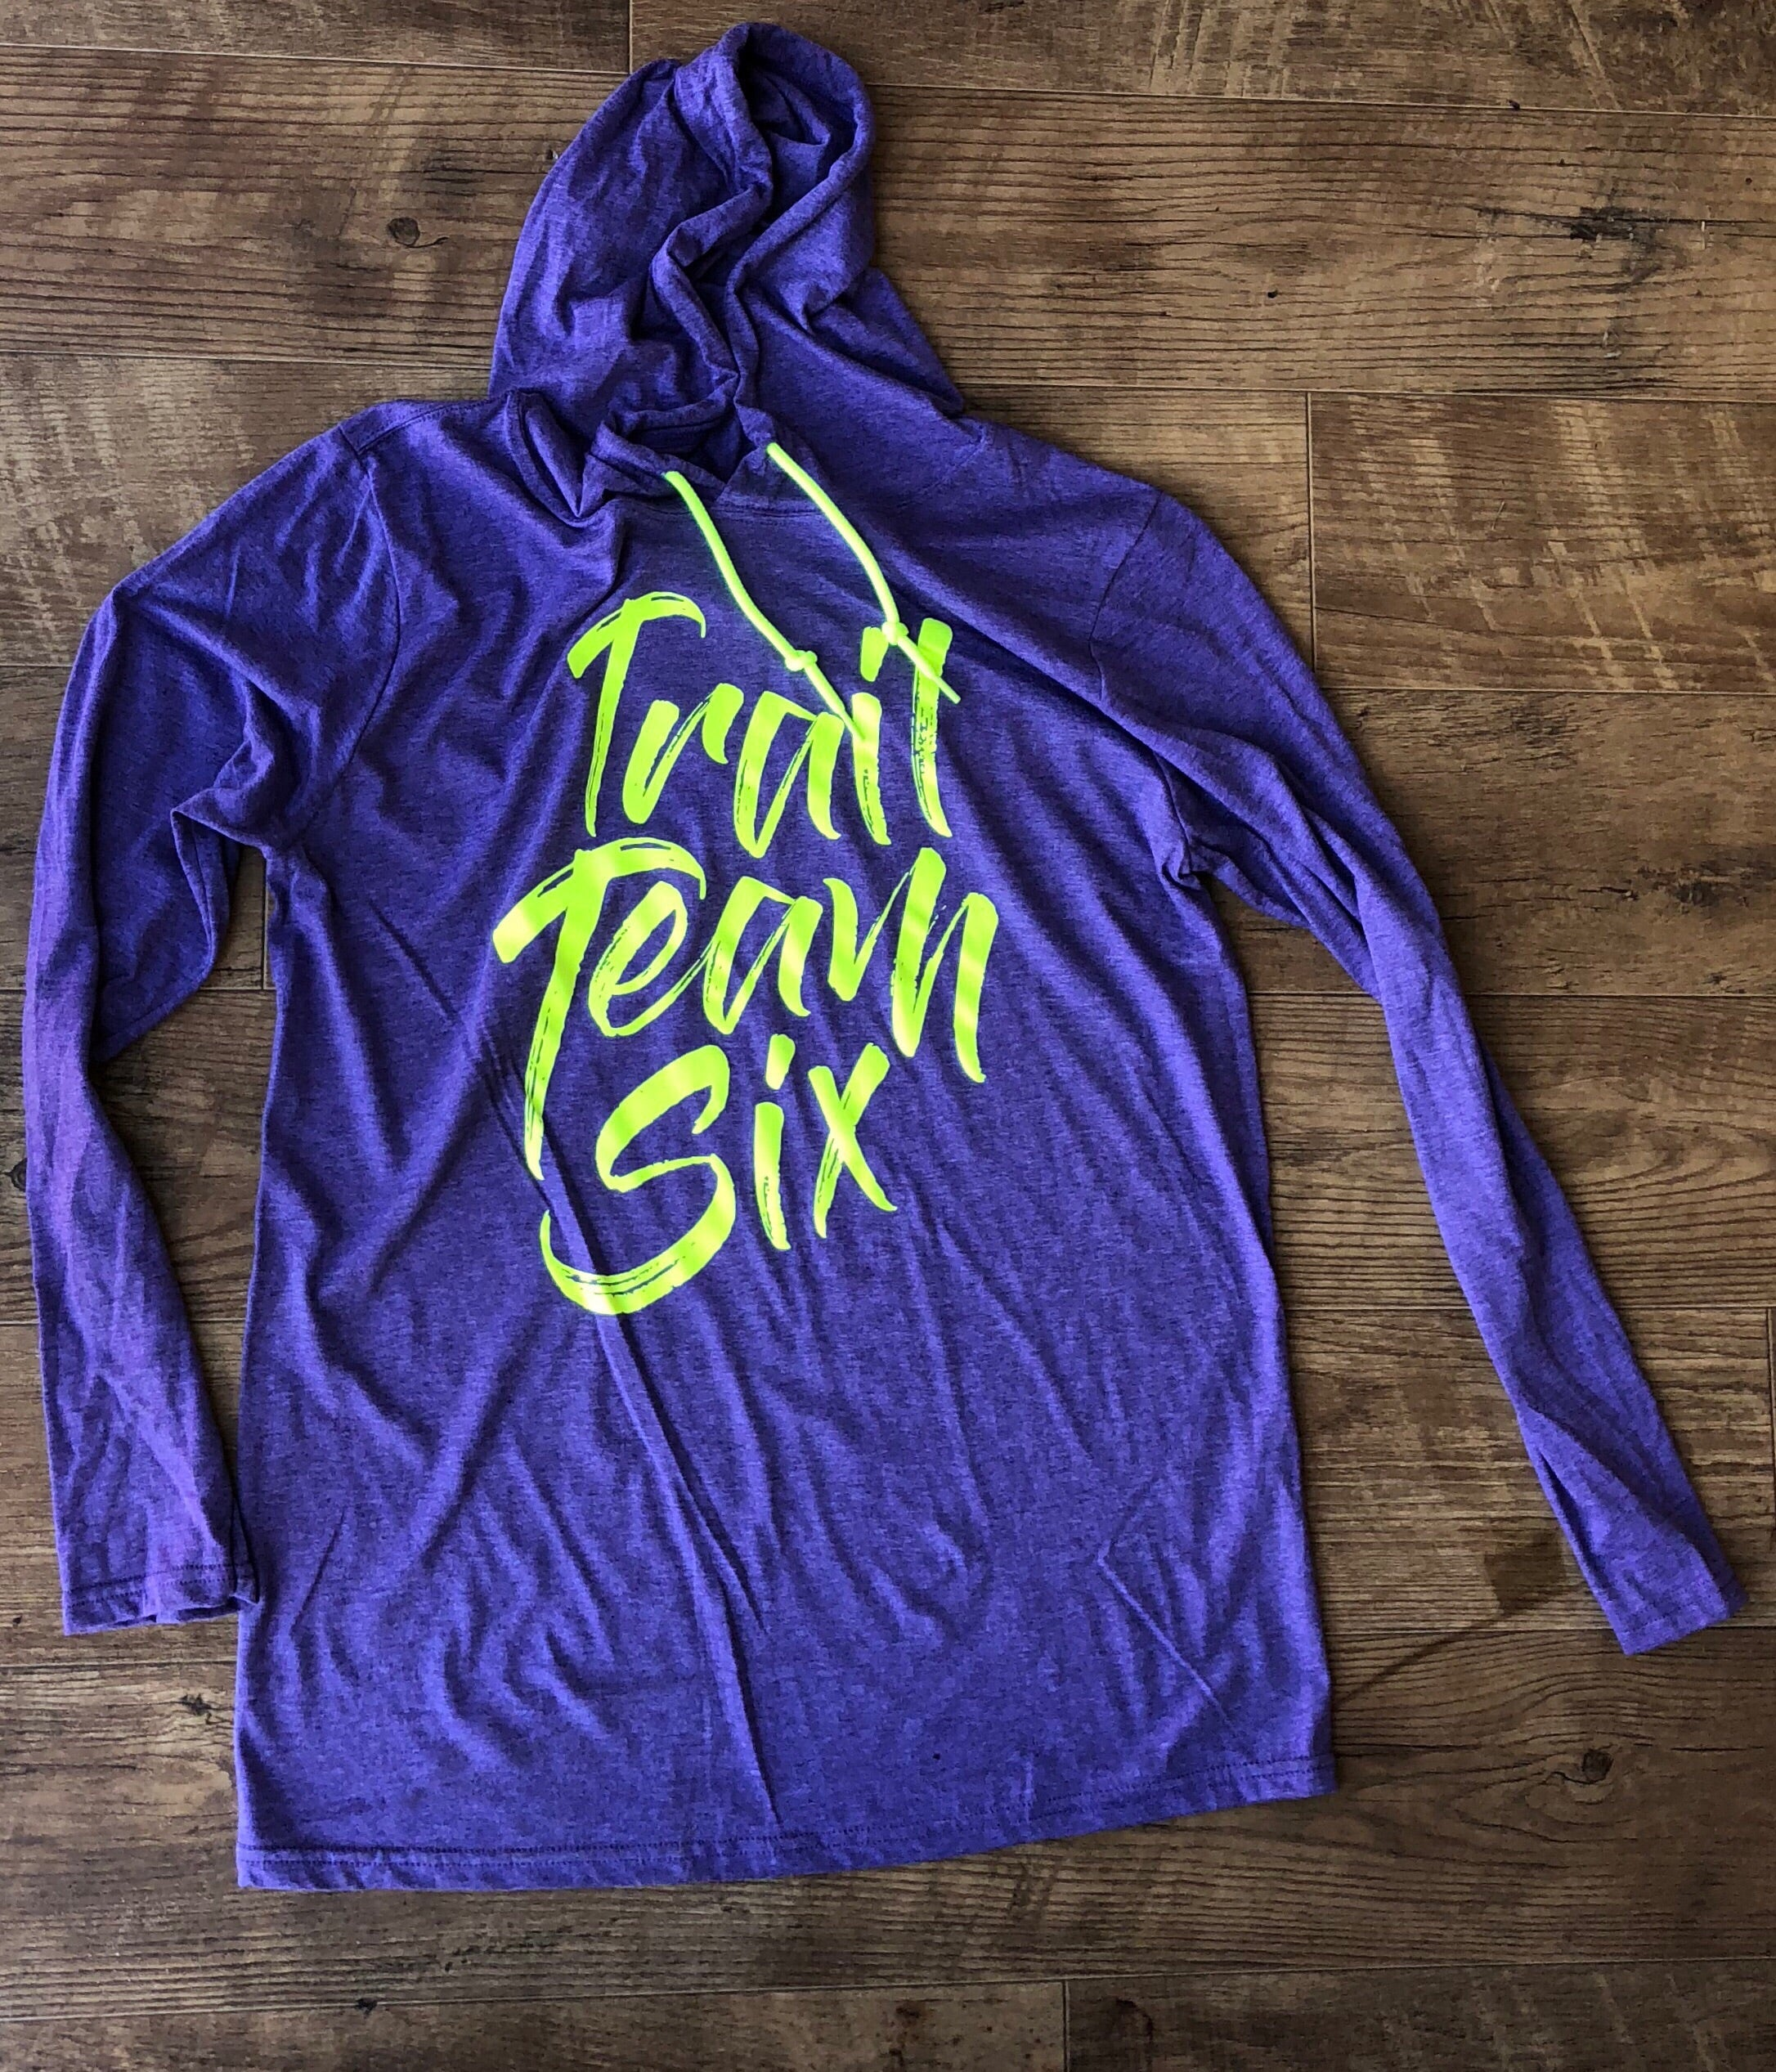 Trail Team Six - Hooded Long Sleeve